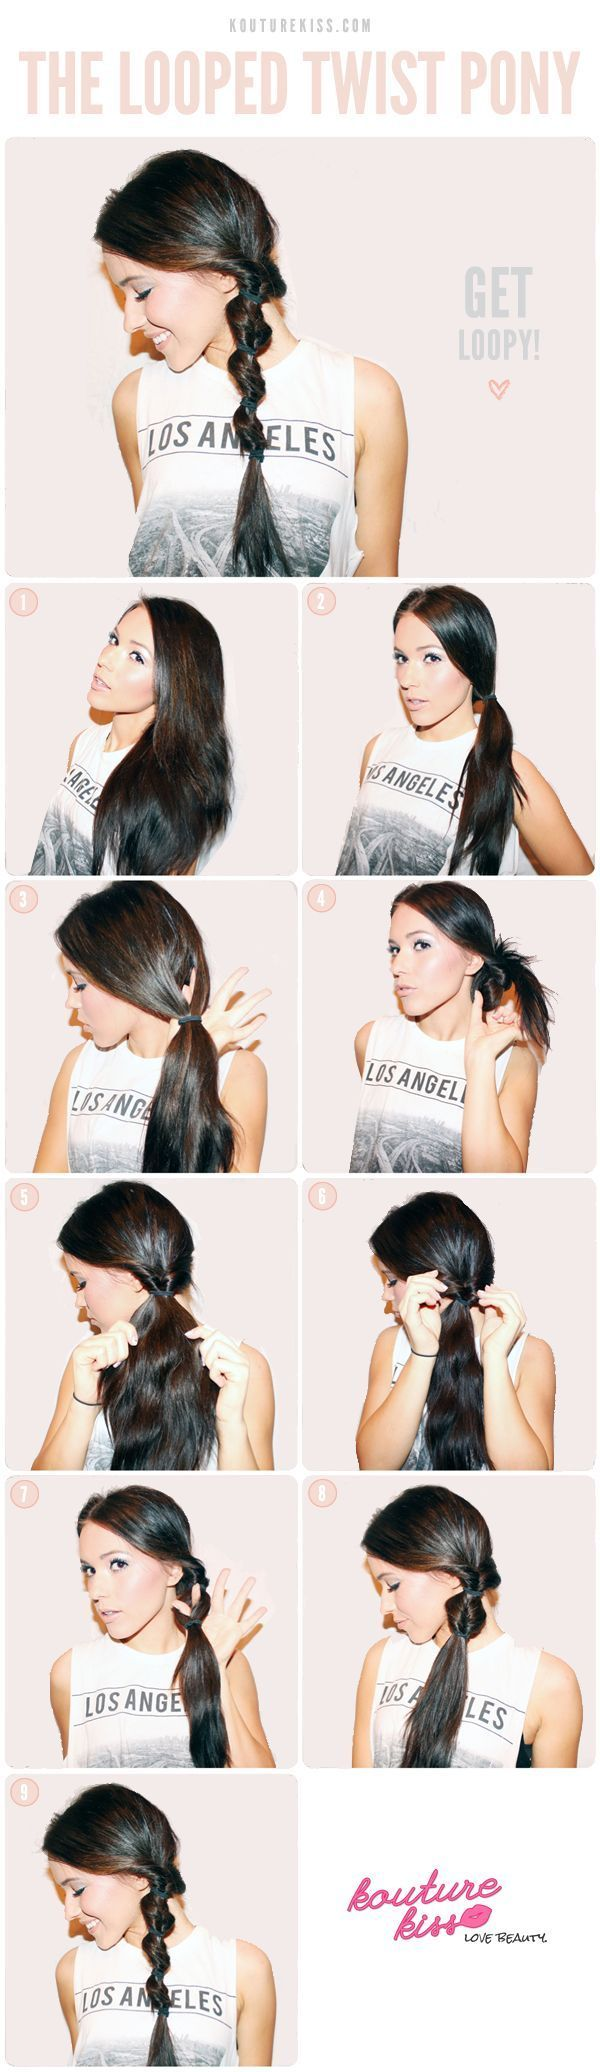 Looped twist pony-Cute and Easy Hairstyle Tutorial